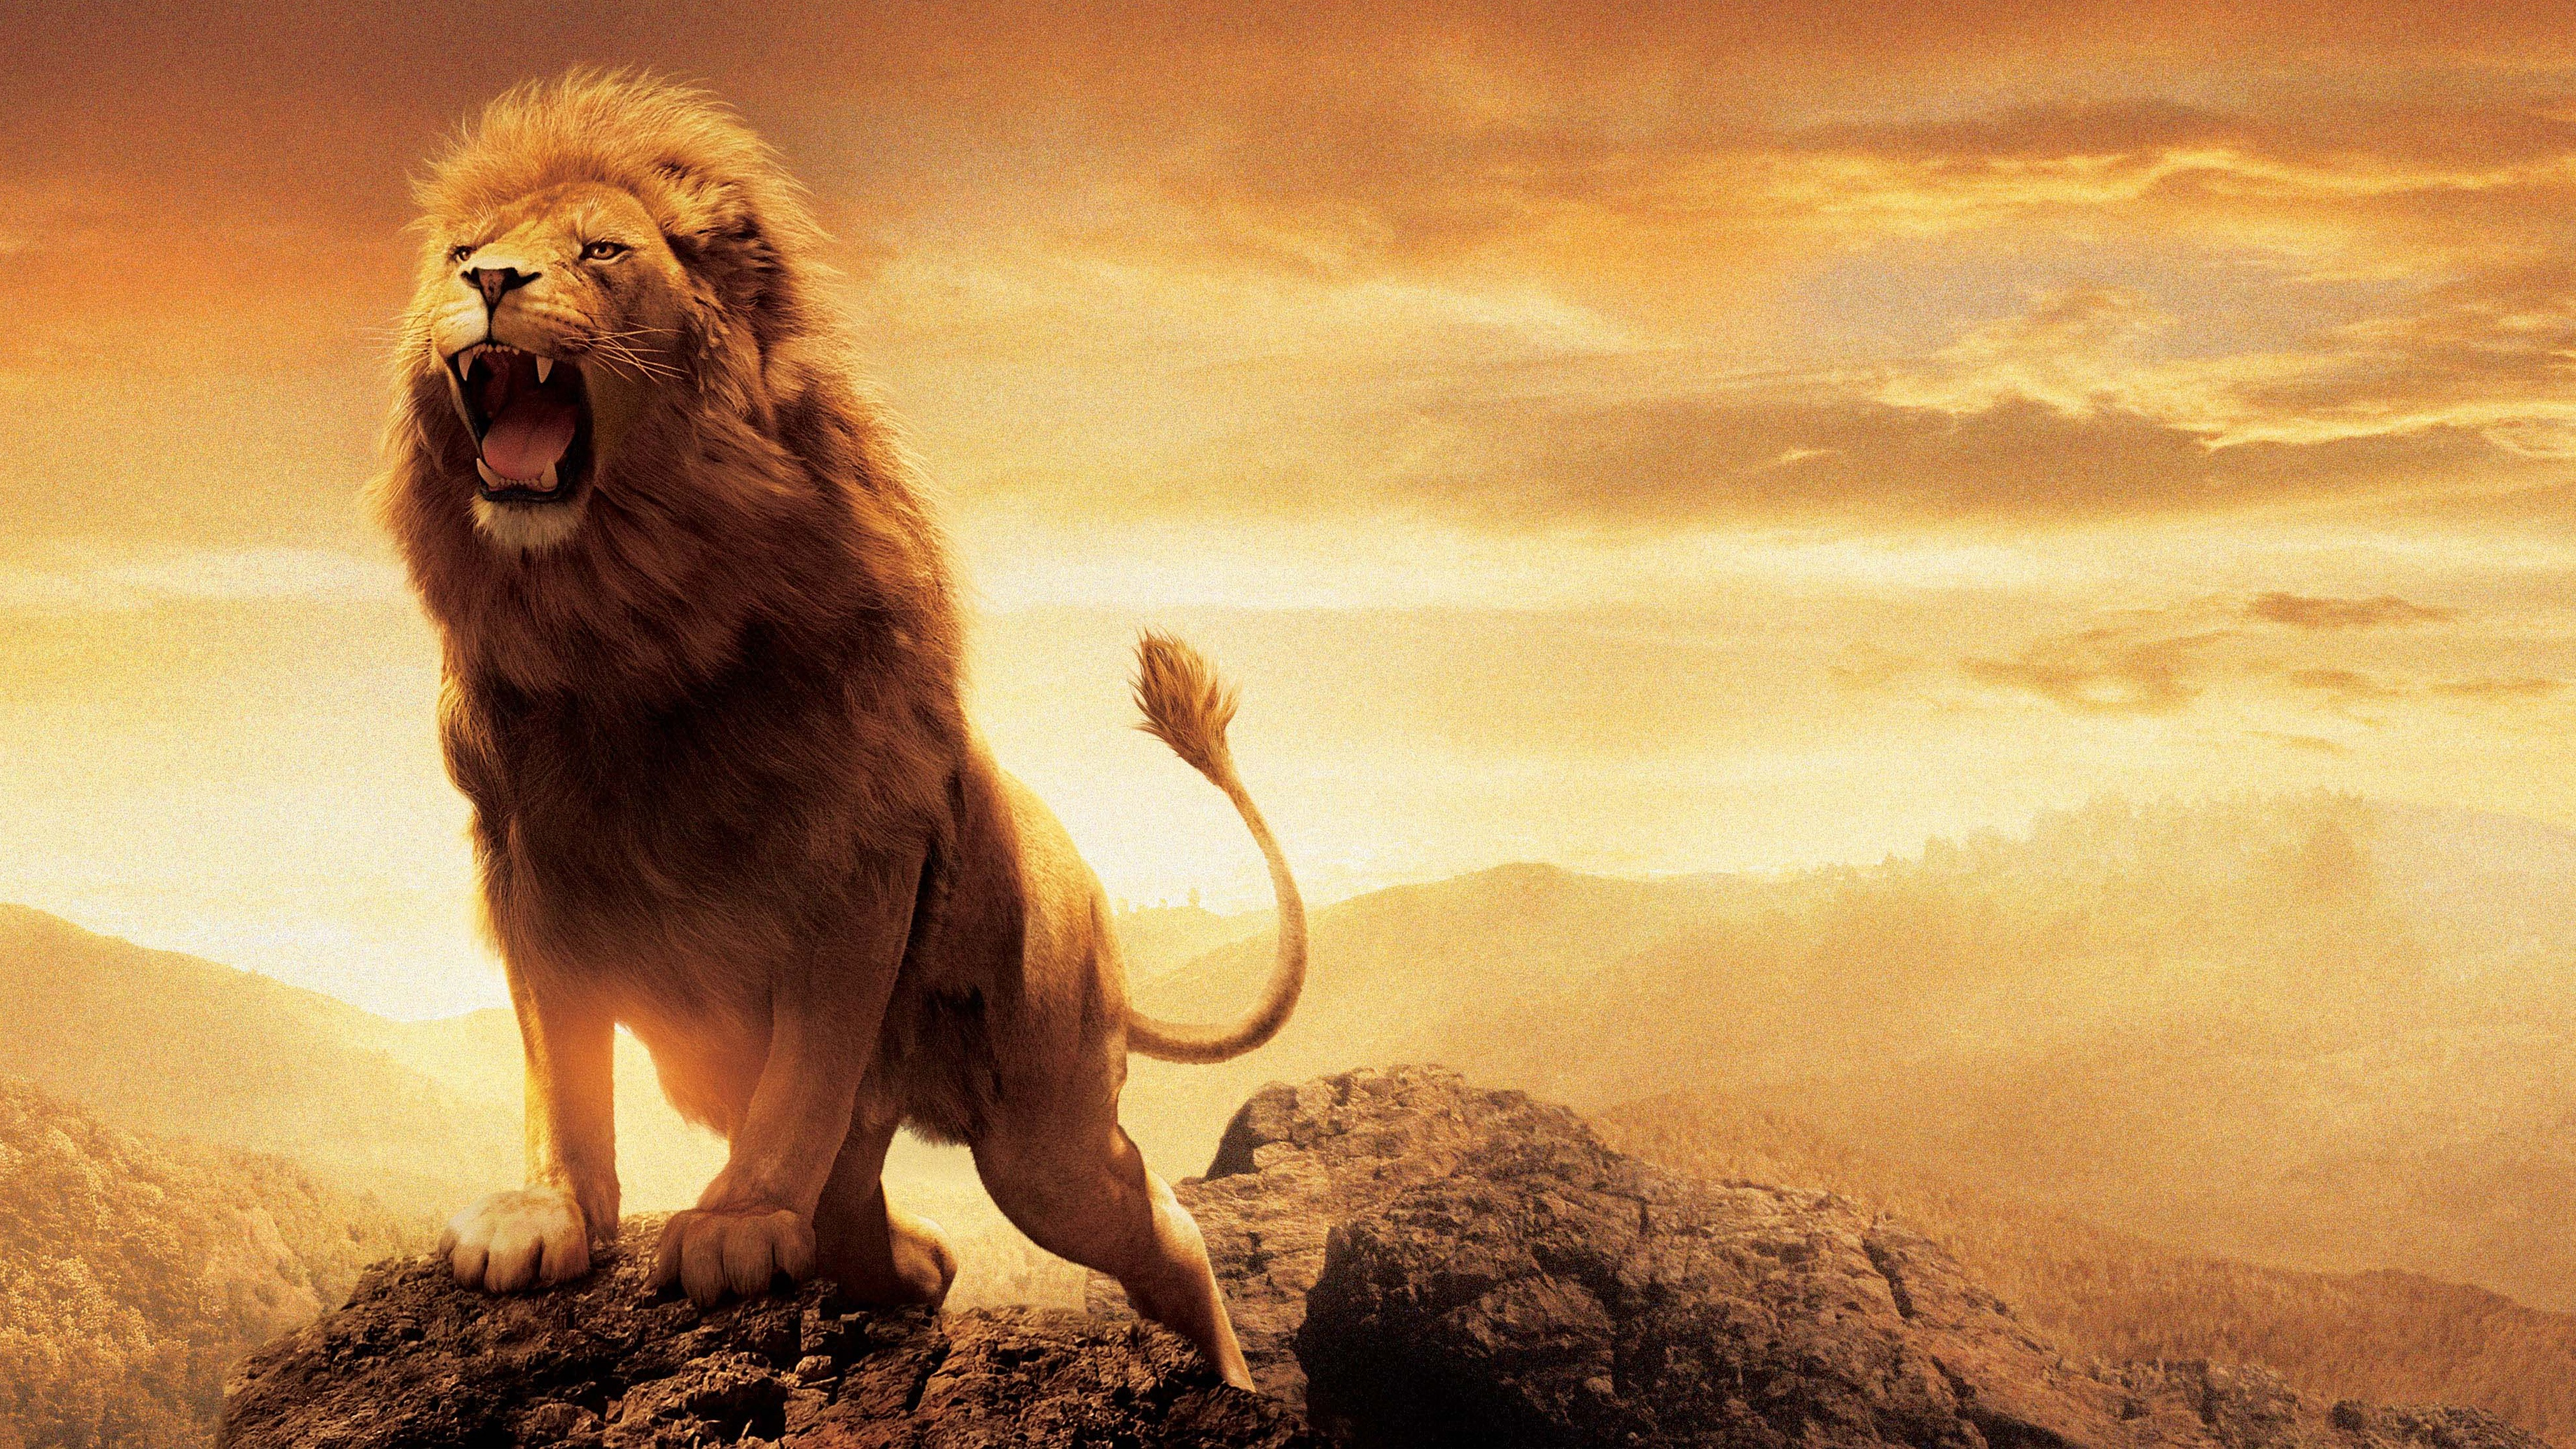 Narnia Lion Aslan Wallpapers in jpg format for free download